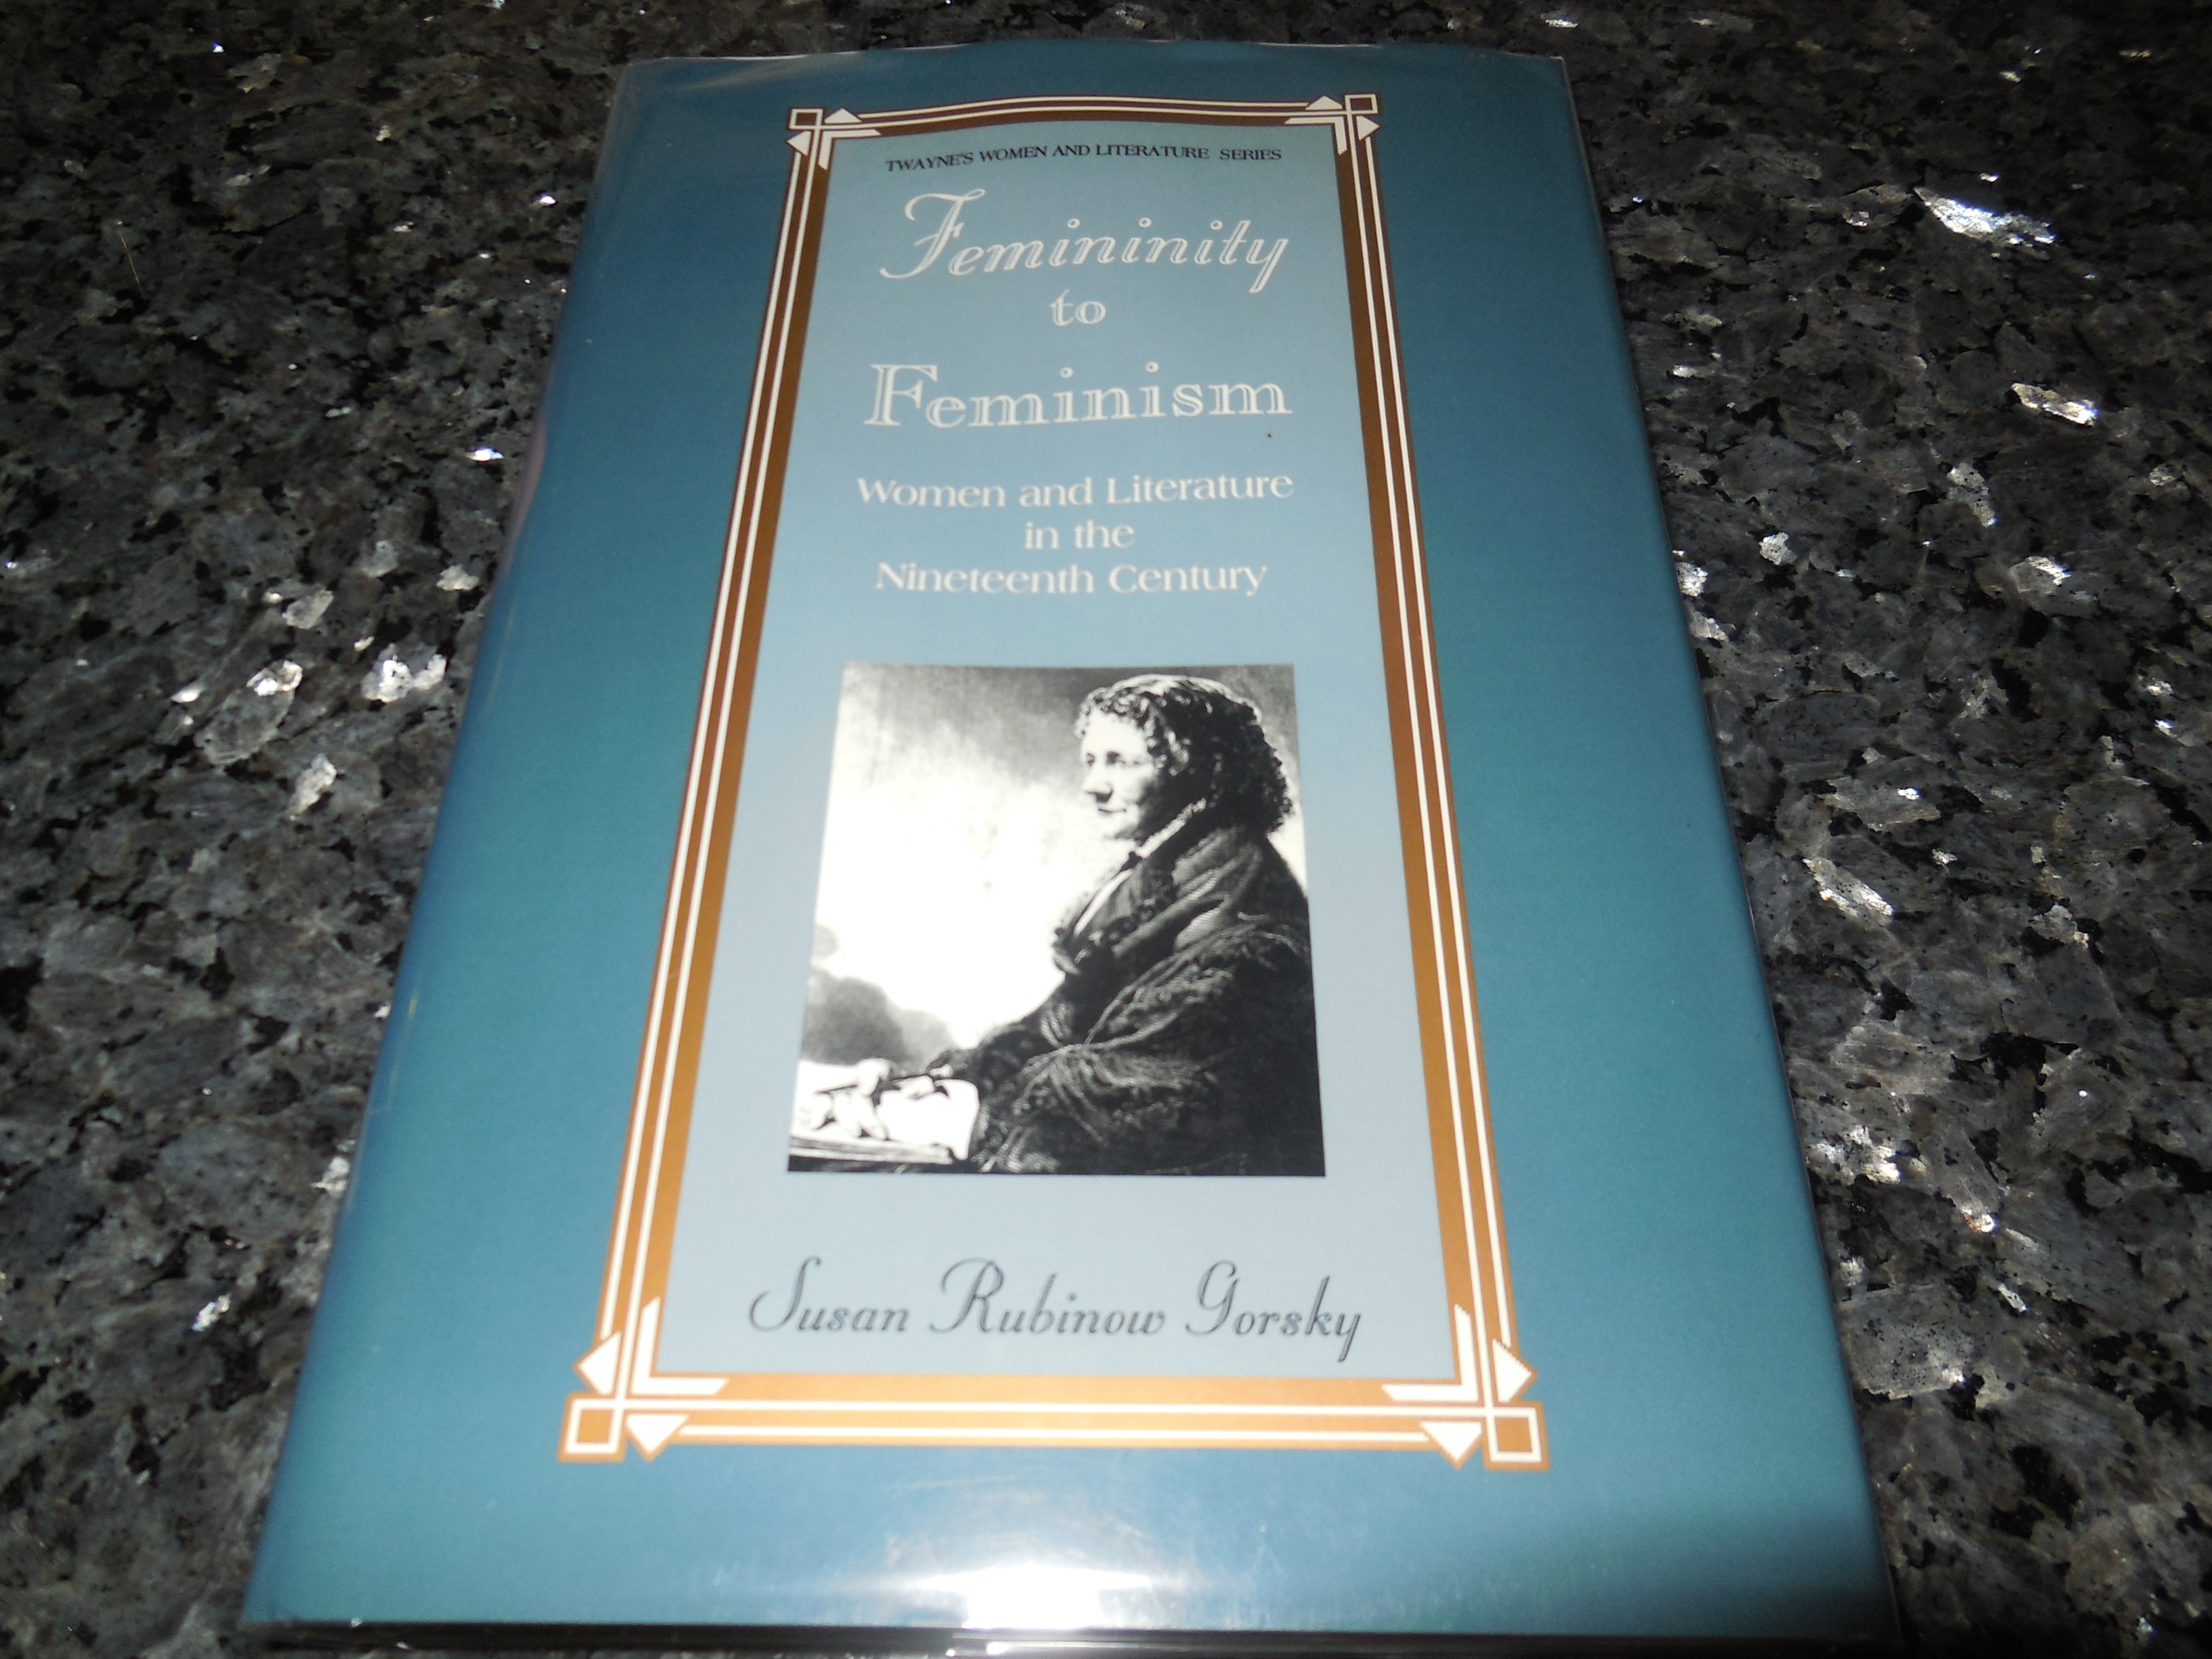 Image for Femininity to Feminism: Women and Literature in the Nineteenth Century (Twayne's Women and Literature Series)